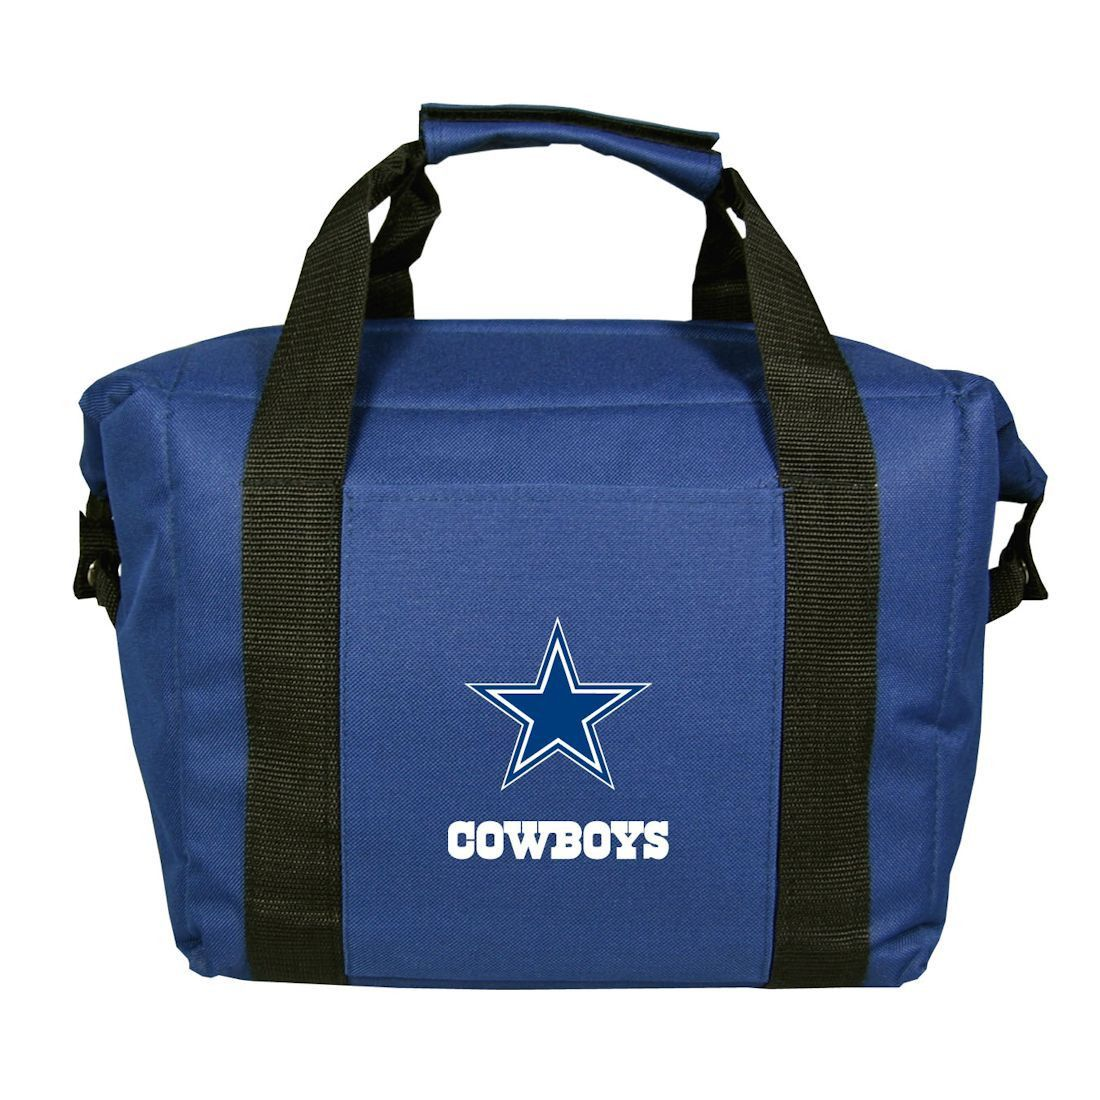 Game cooler bags - 8686702434 868670243420 _c_ Kolder S Kooler Bag Is A Must Have For Game Day Fans